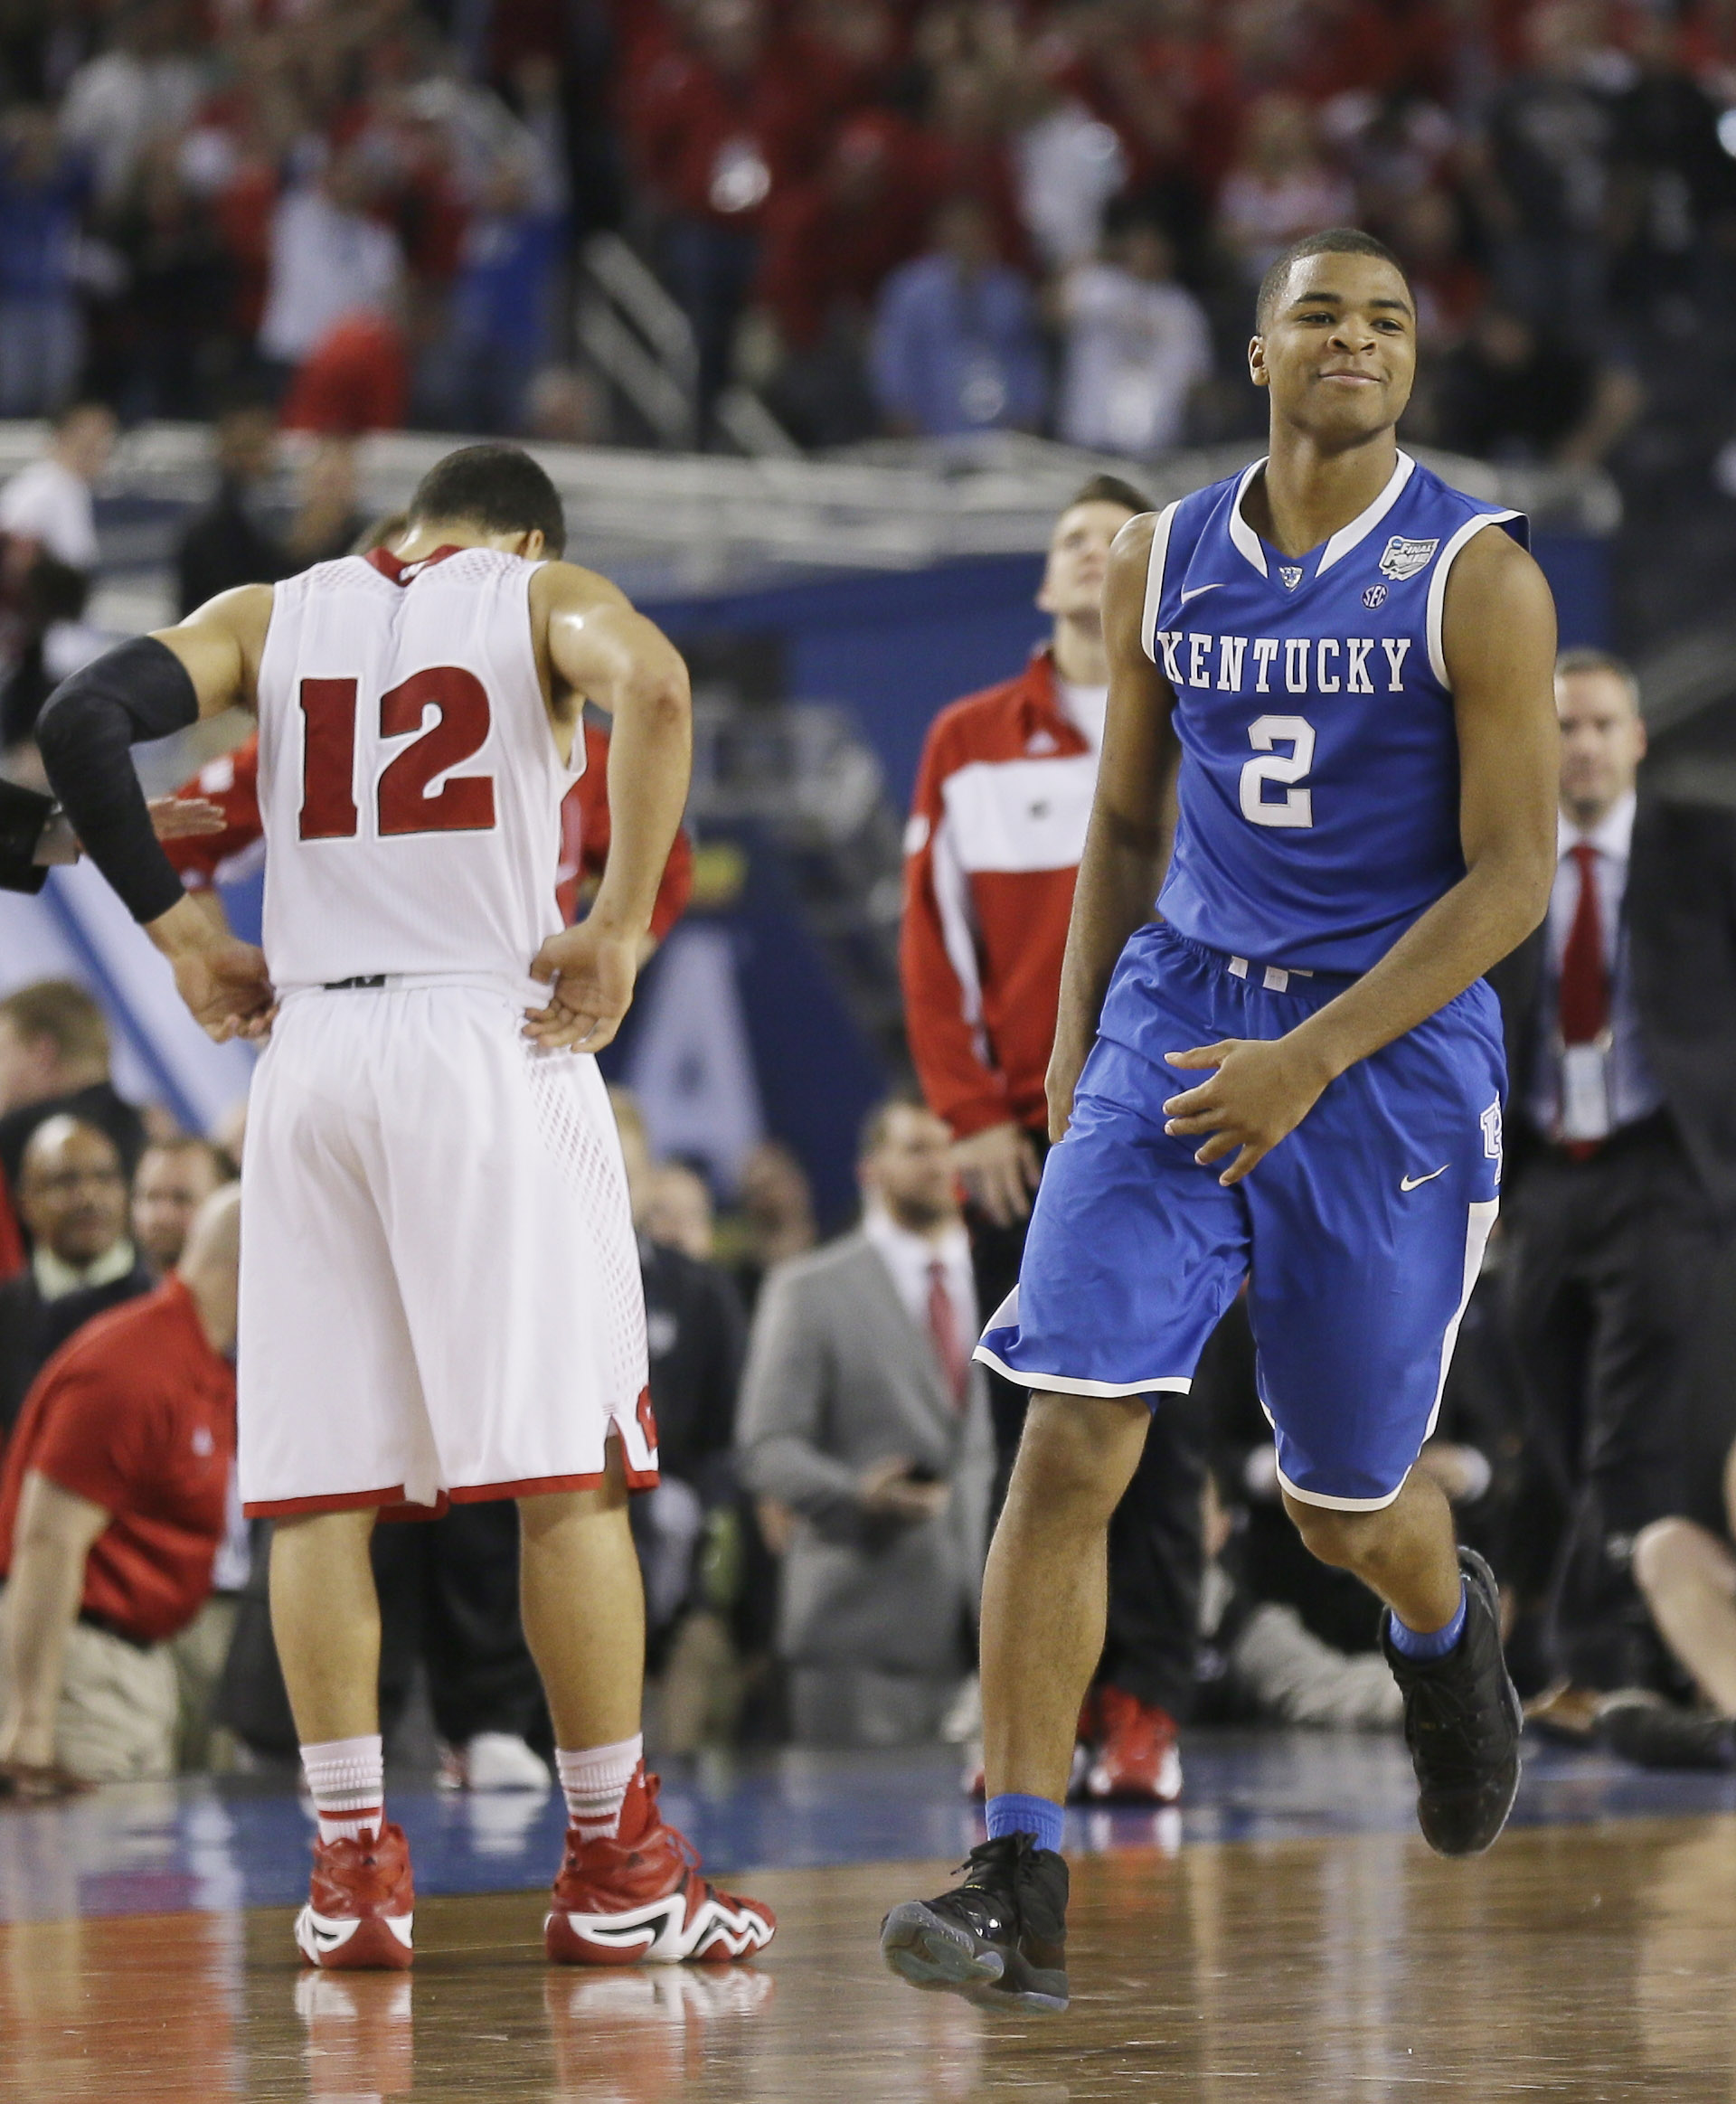 Kentucky guard Aaron Harrison (2) celebrates after making a three-point basket in the final seconds against Wisconsin to win the game 74-73 during their NCAA Final Four tournament college basketball semifinal game Saturday, April 5, 2014, in Arlington, Texas. Wisconsin guard Traevon Jackson (12) walks away